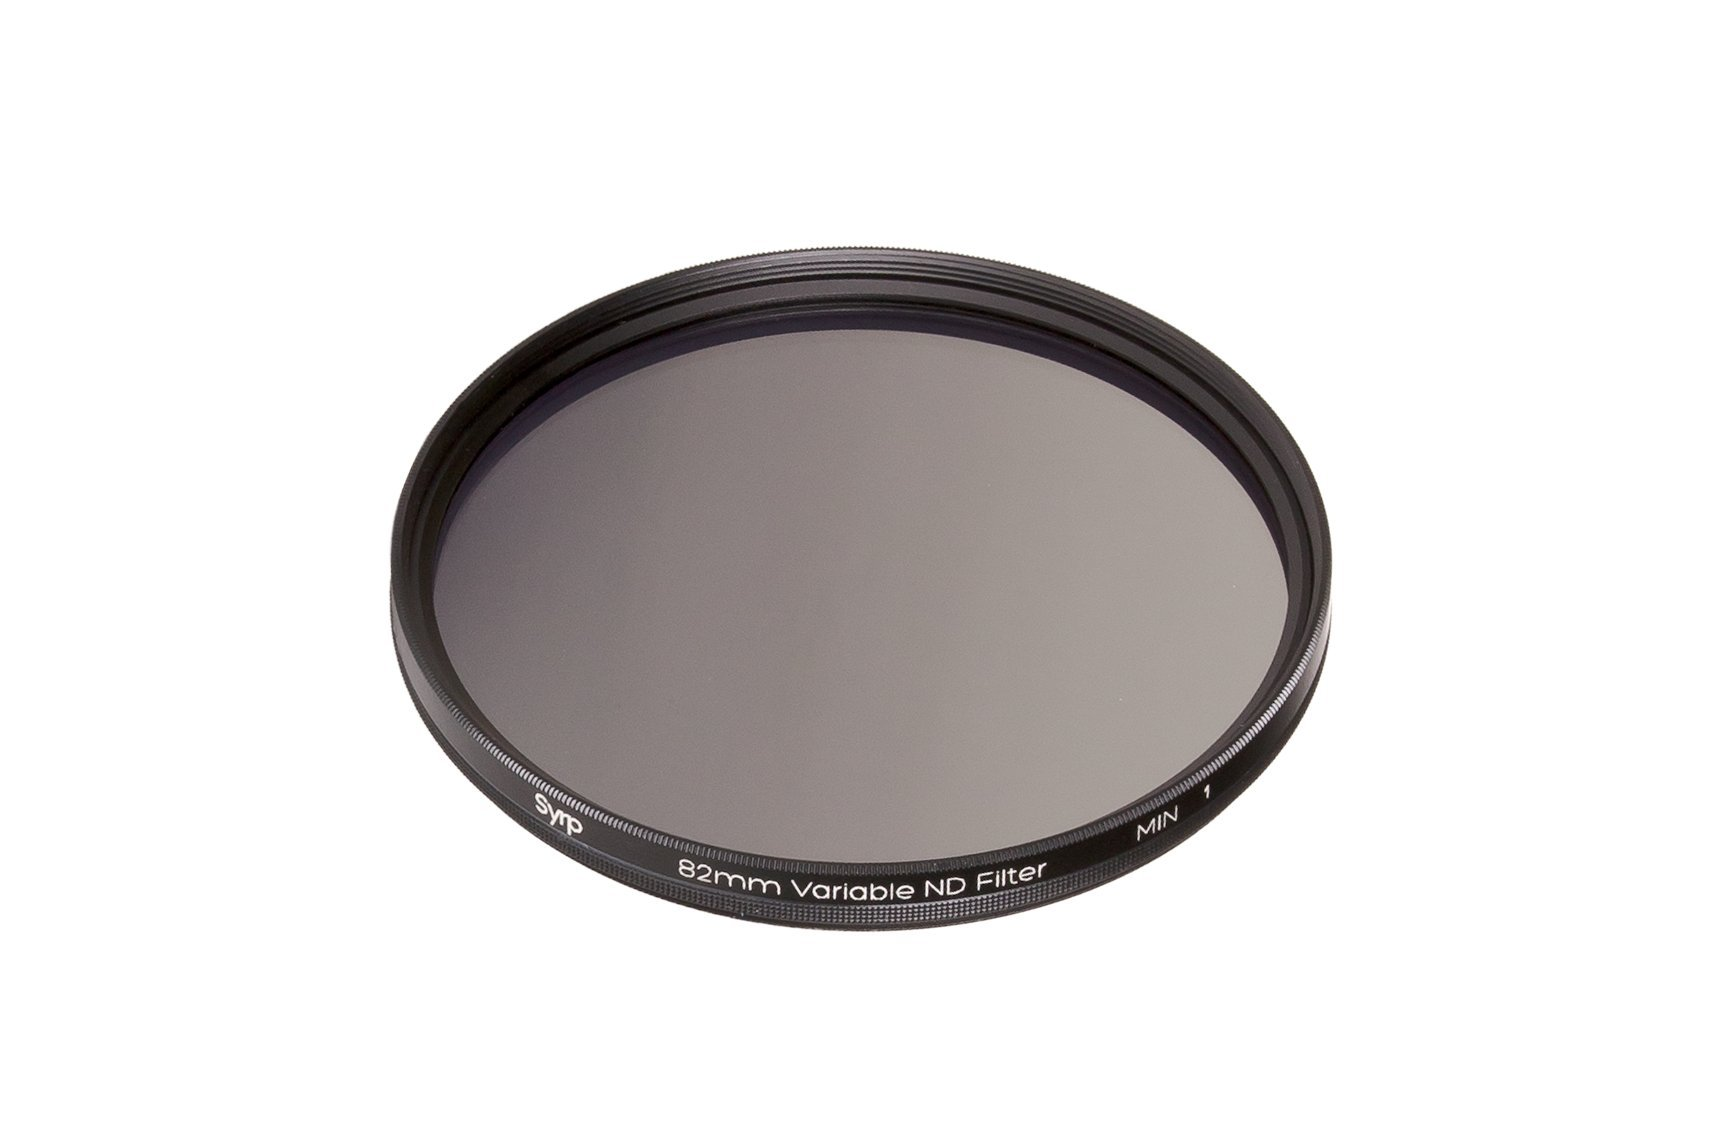 Syrp Large (82mm) Variable ND Filter by SYRP